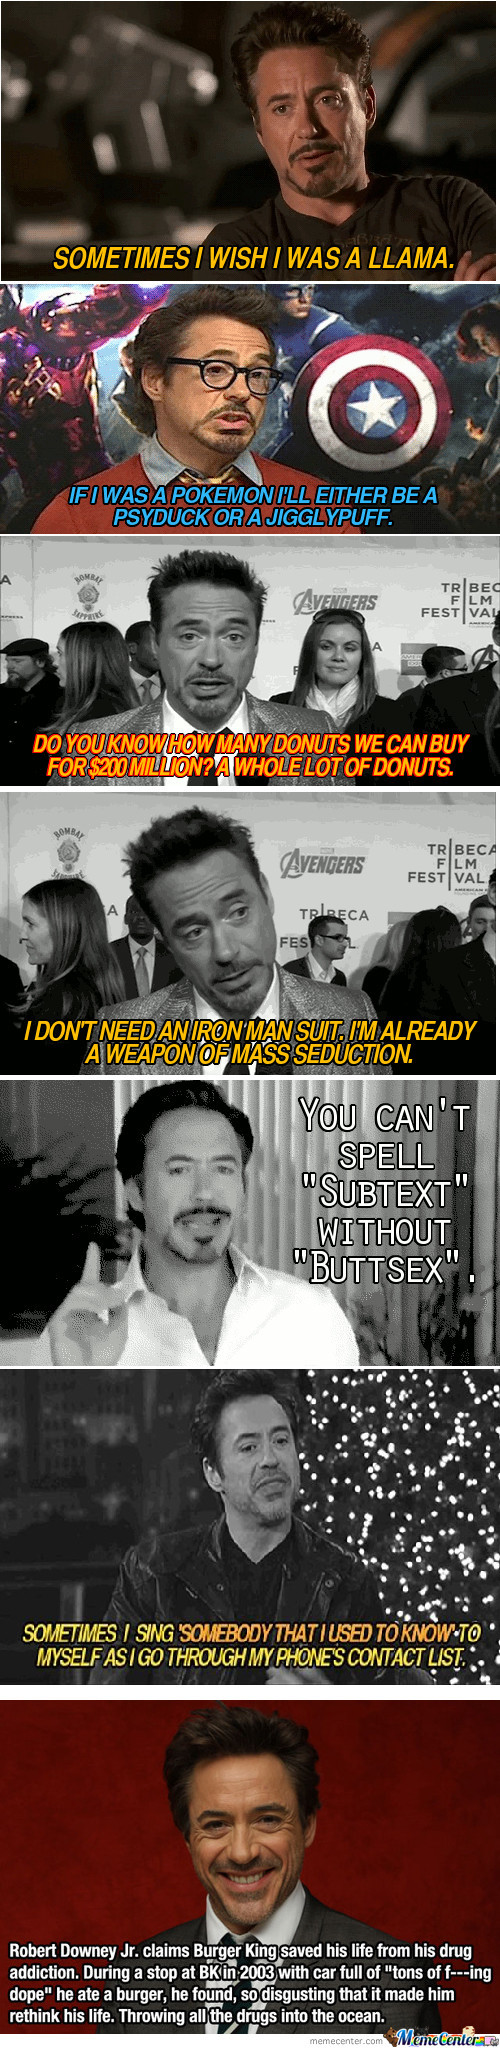 Robert Downey Jr Compilation